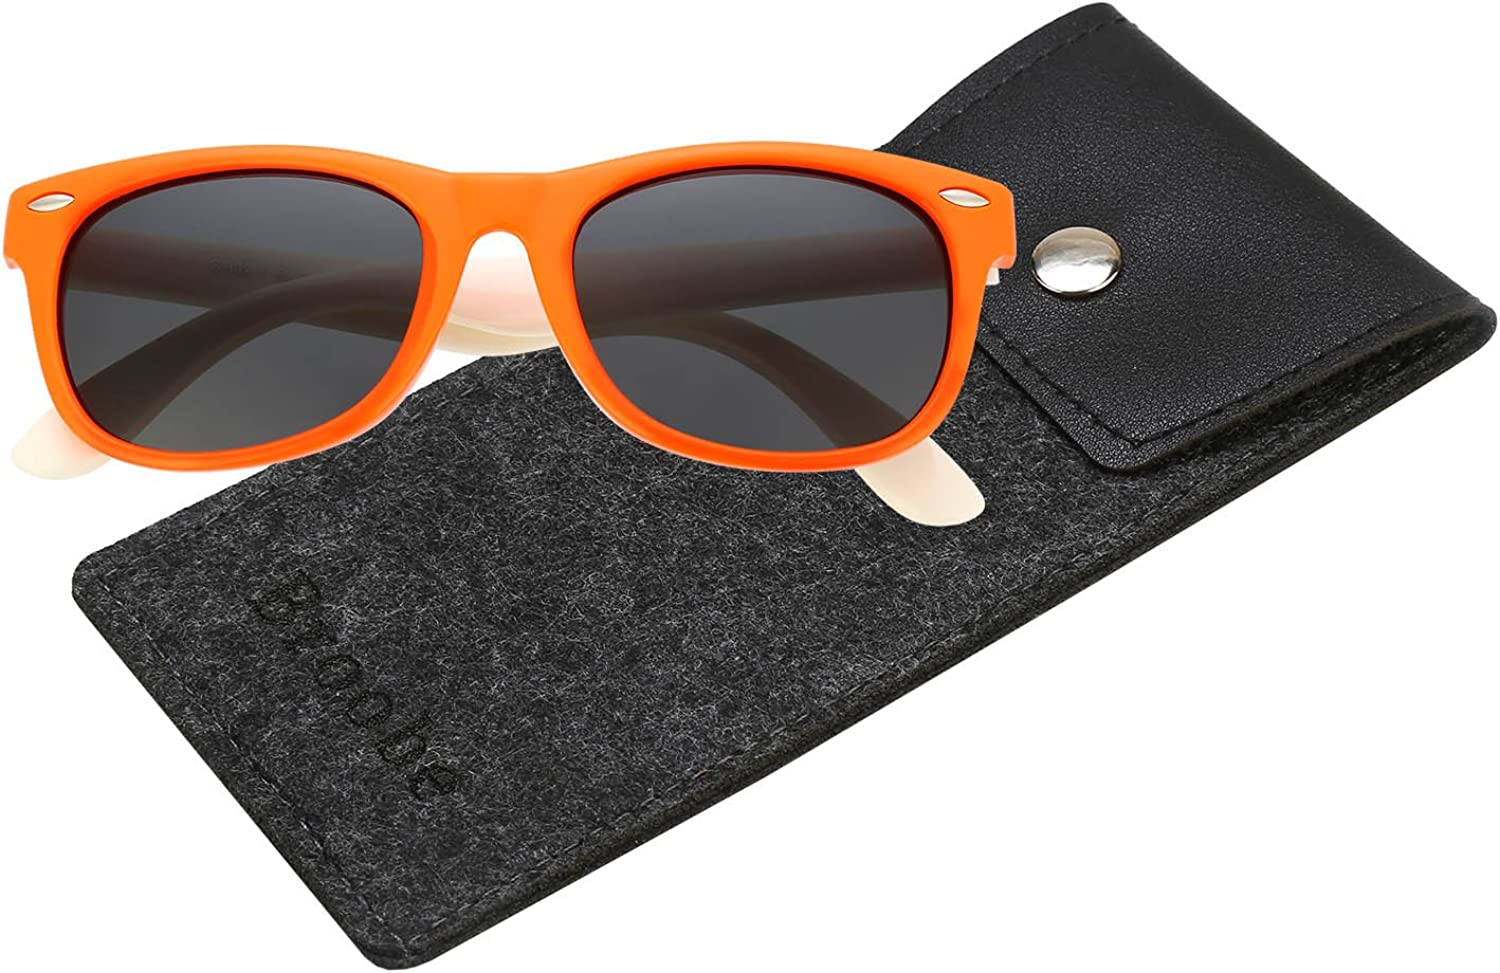 Brooben Rubber Flexible Kids Polarized Sunglasses for Baby and Children Age 3-10 802